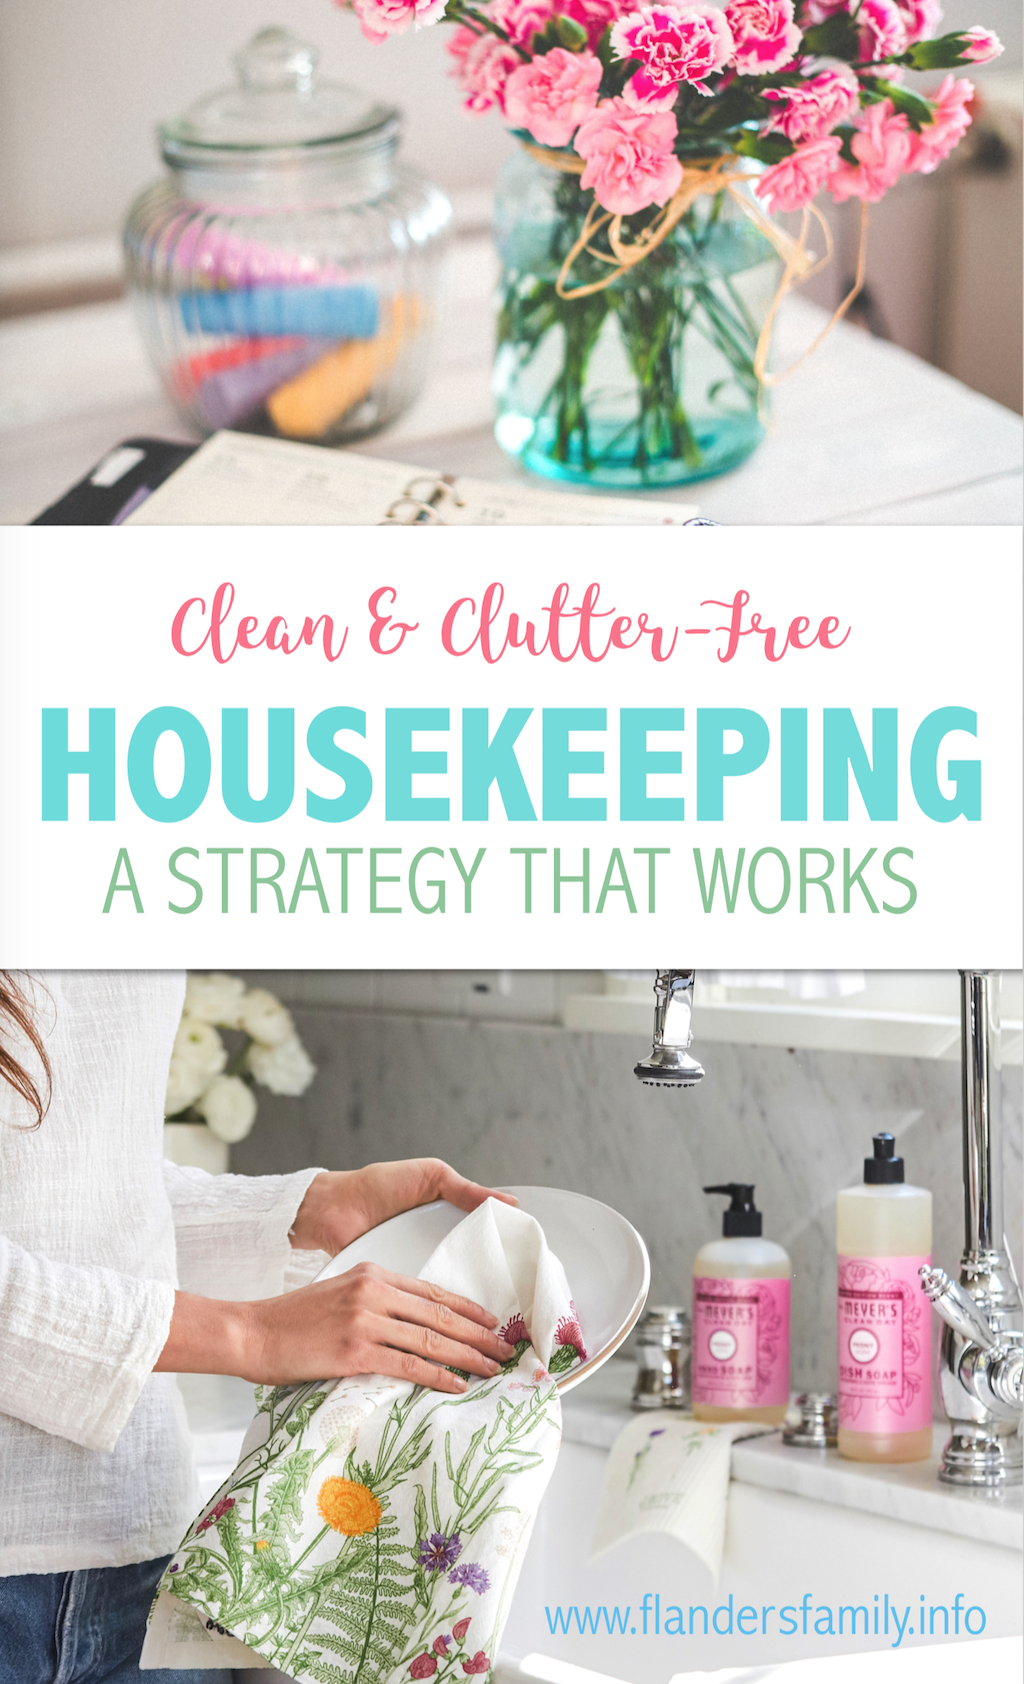 Clean and Clutter-Free Housekeeping Strategy